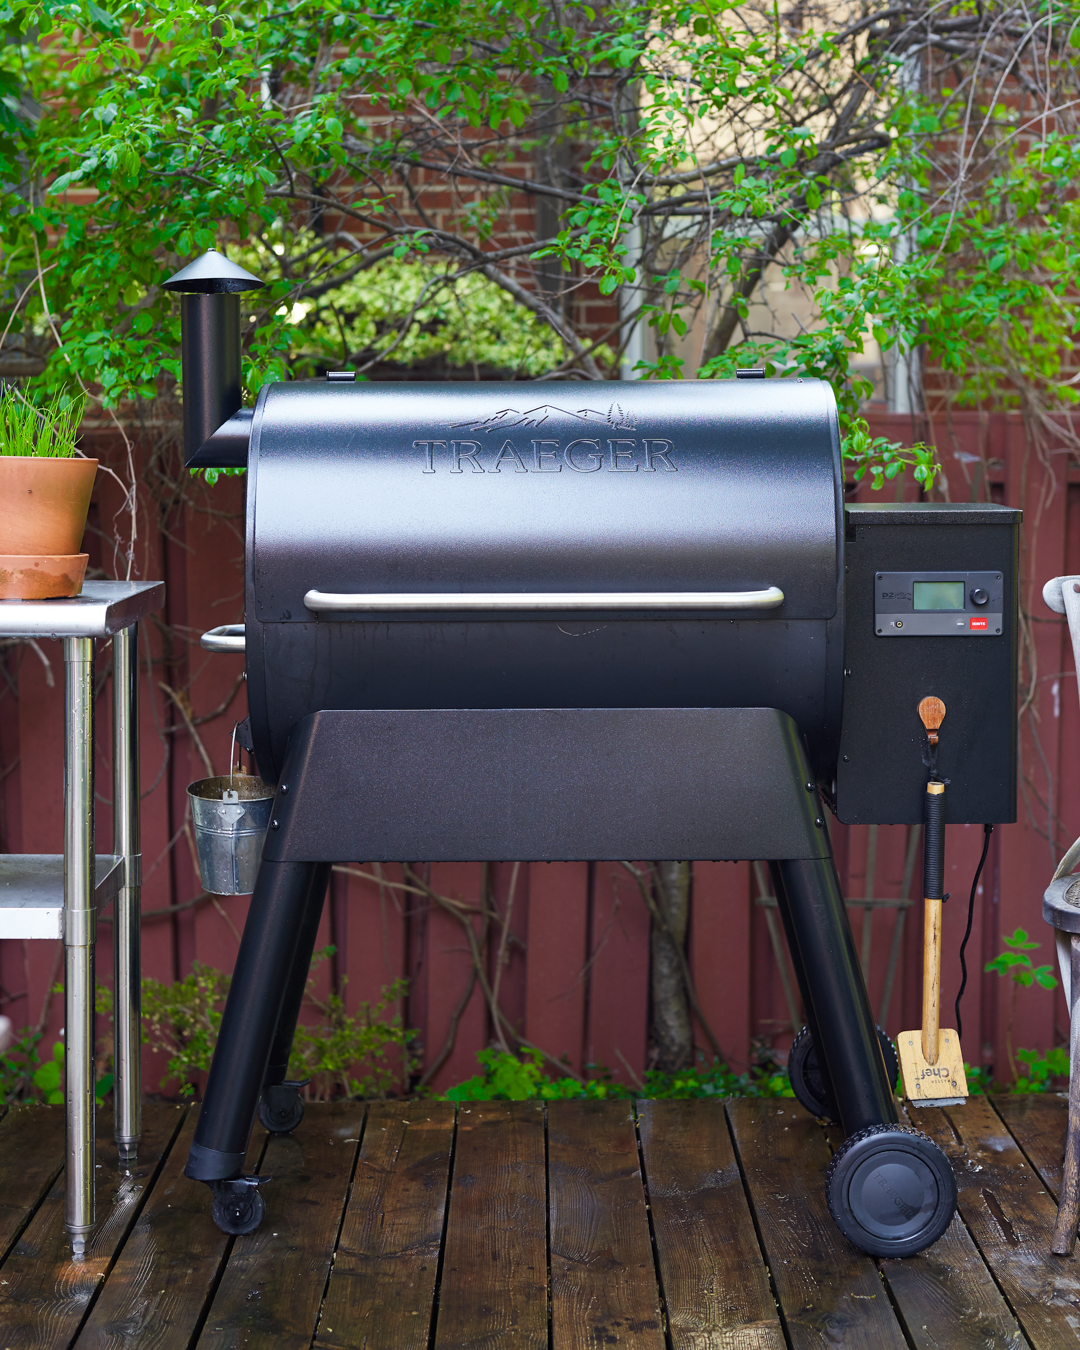 This Traeger Grills Black Friday Sale Won't Last Long